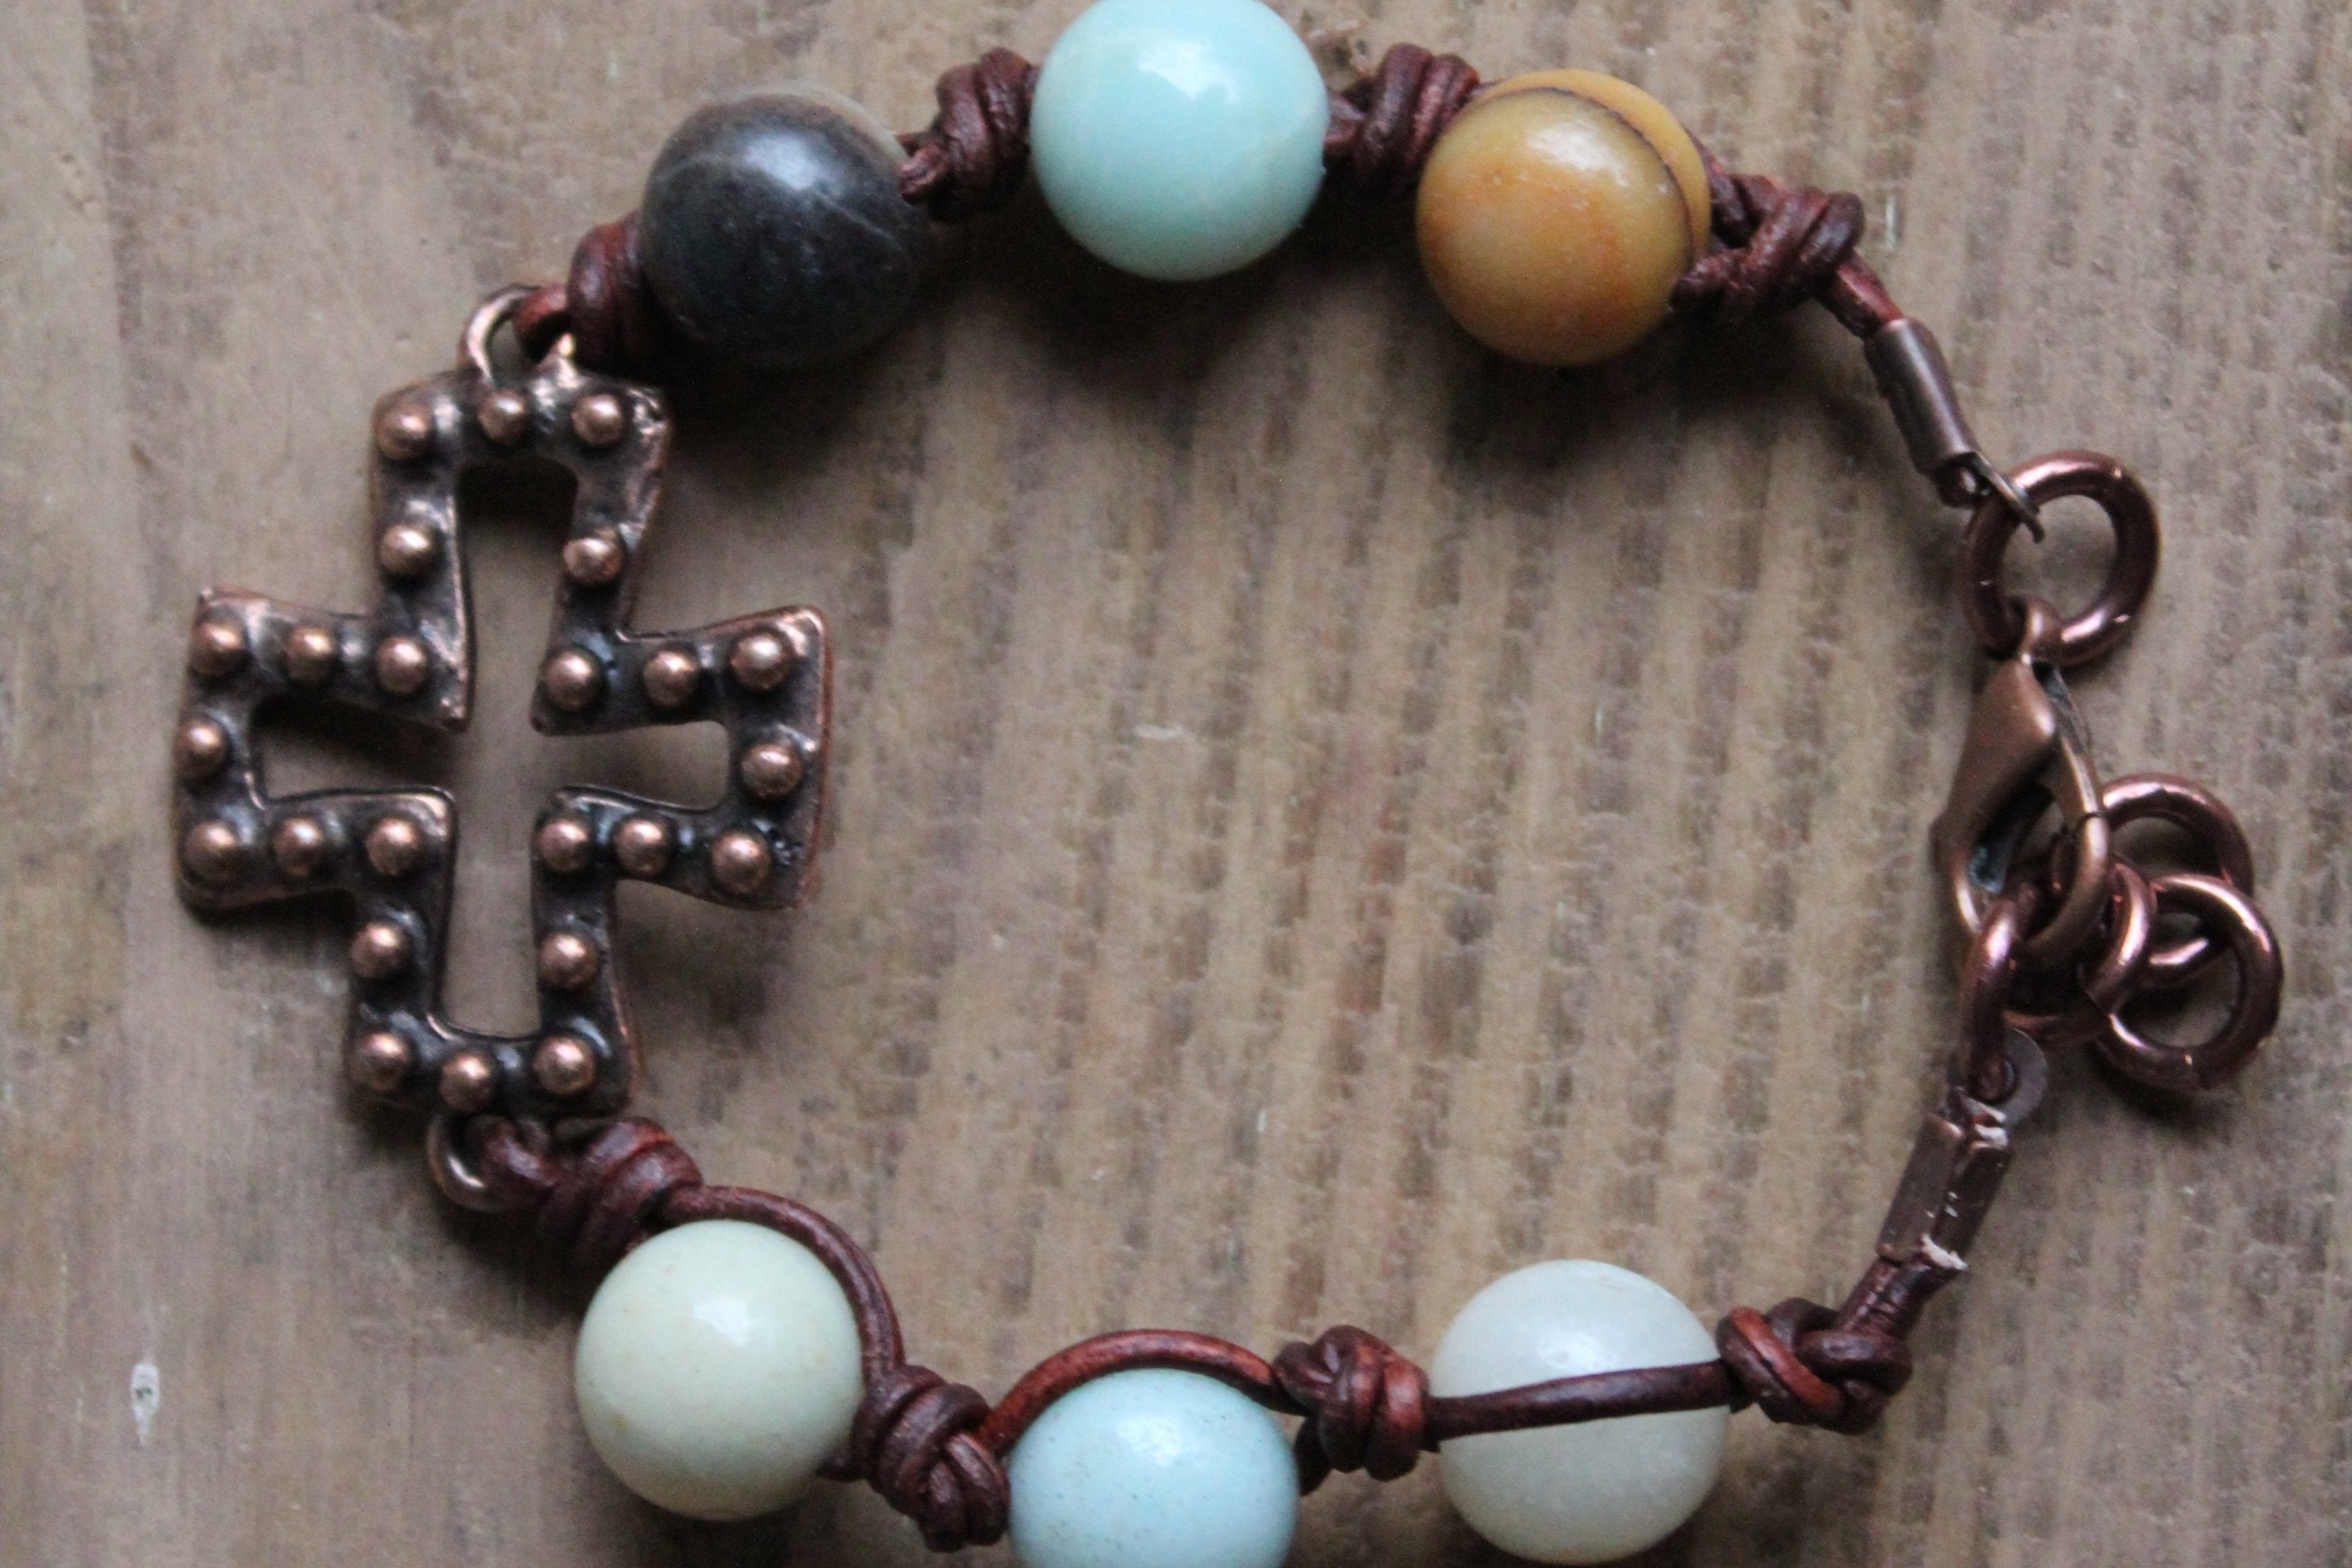 B031C; Bracelets; Open Coppertone Studded Cross; Knotted Black Leather; Amazonite Beads; ; ; ; Majestees;